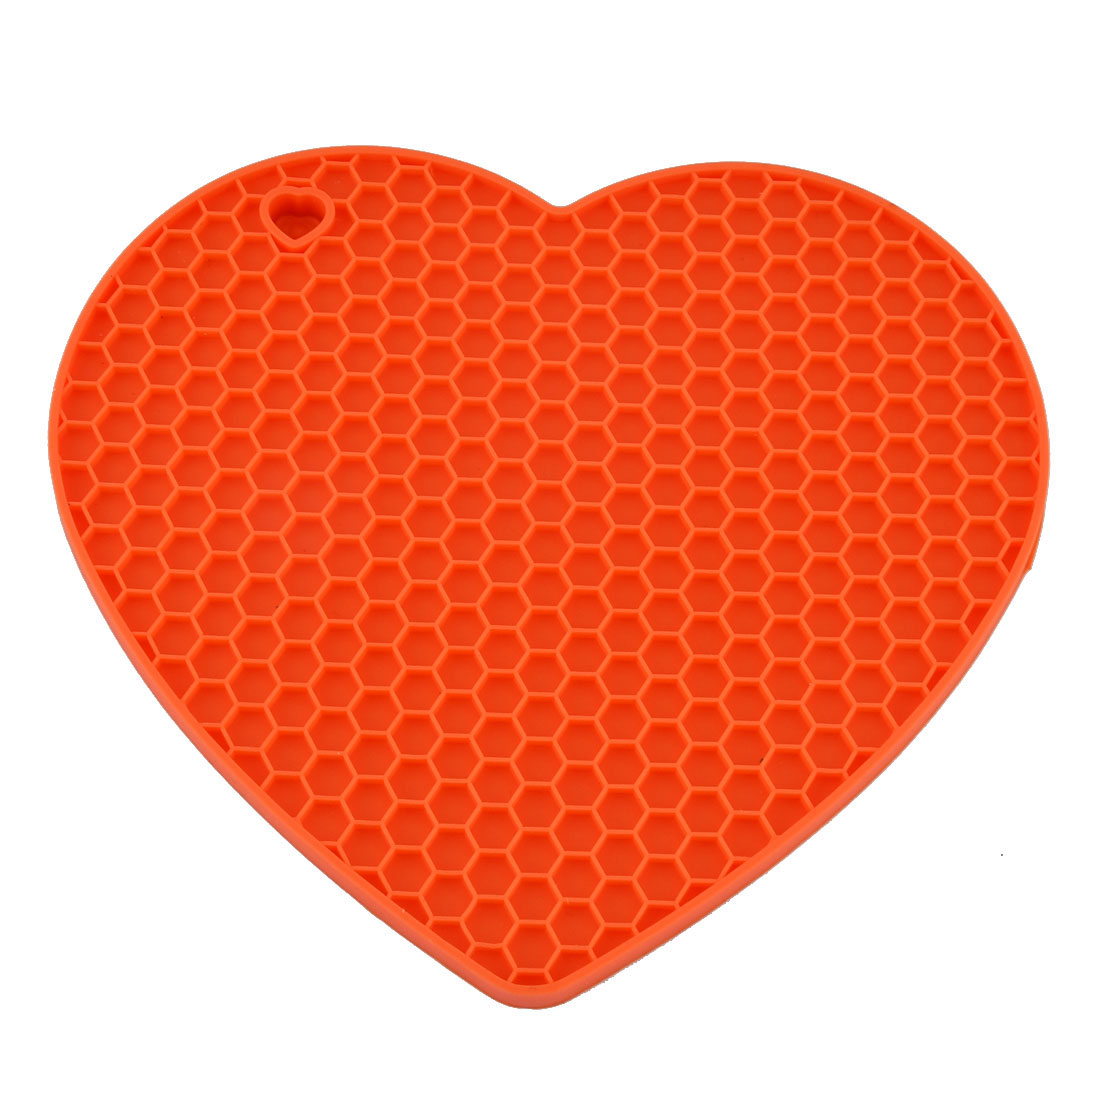 Silicone Heart Shaped Honeycomb Pattern Heat Insulation Pot Holder Pad Orange